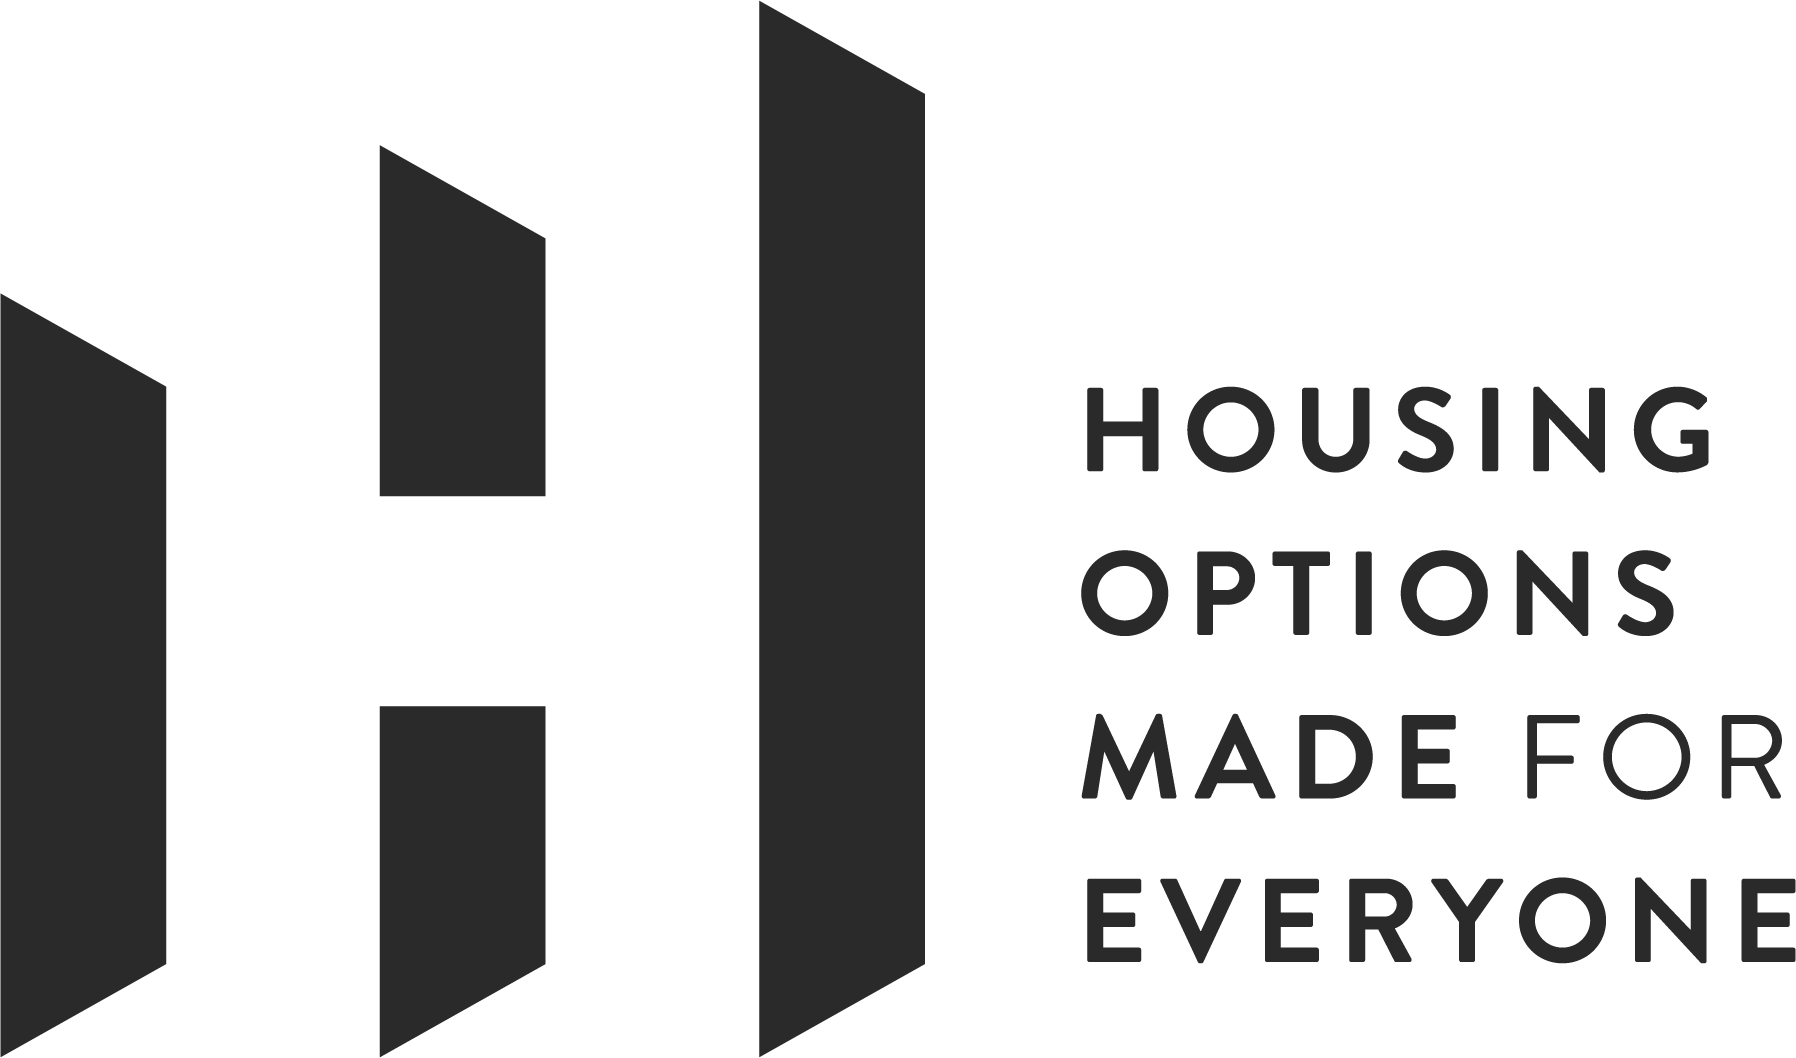 Housing Options Made for Everyone